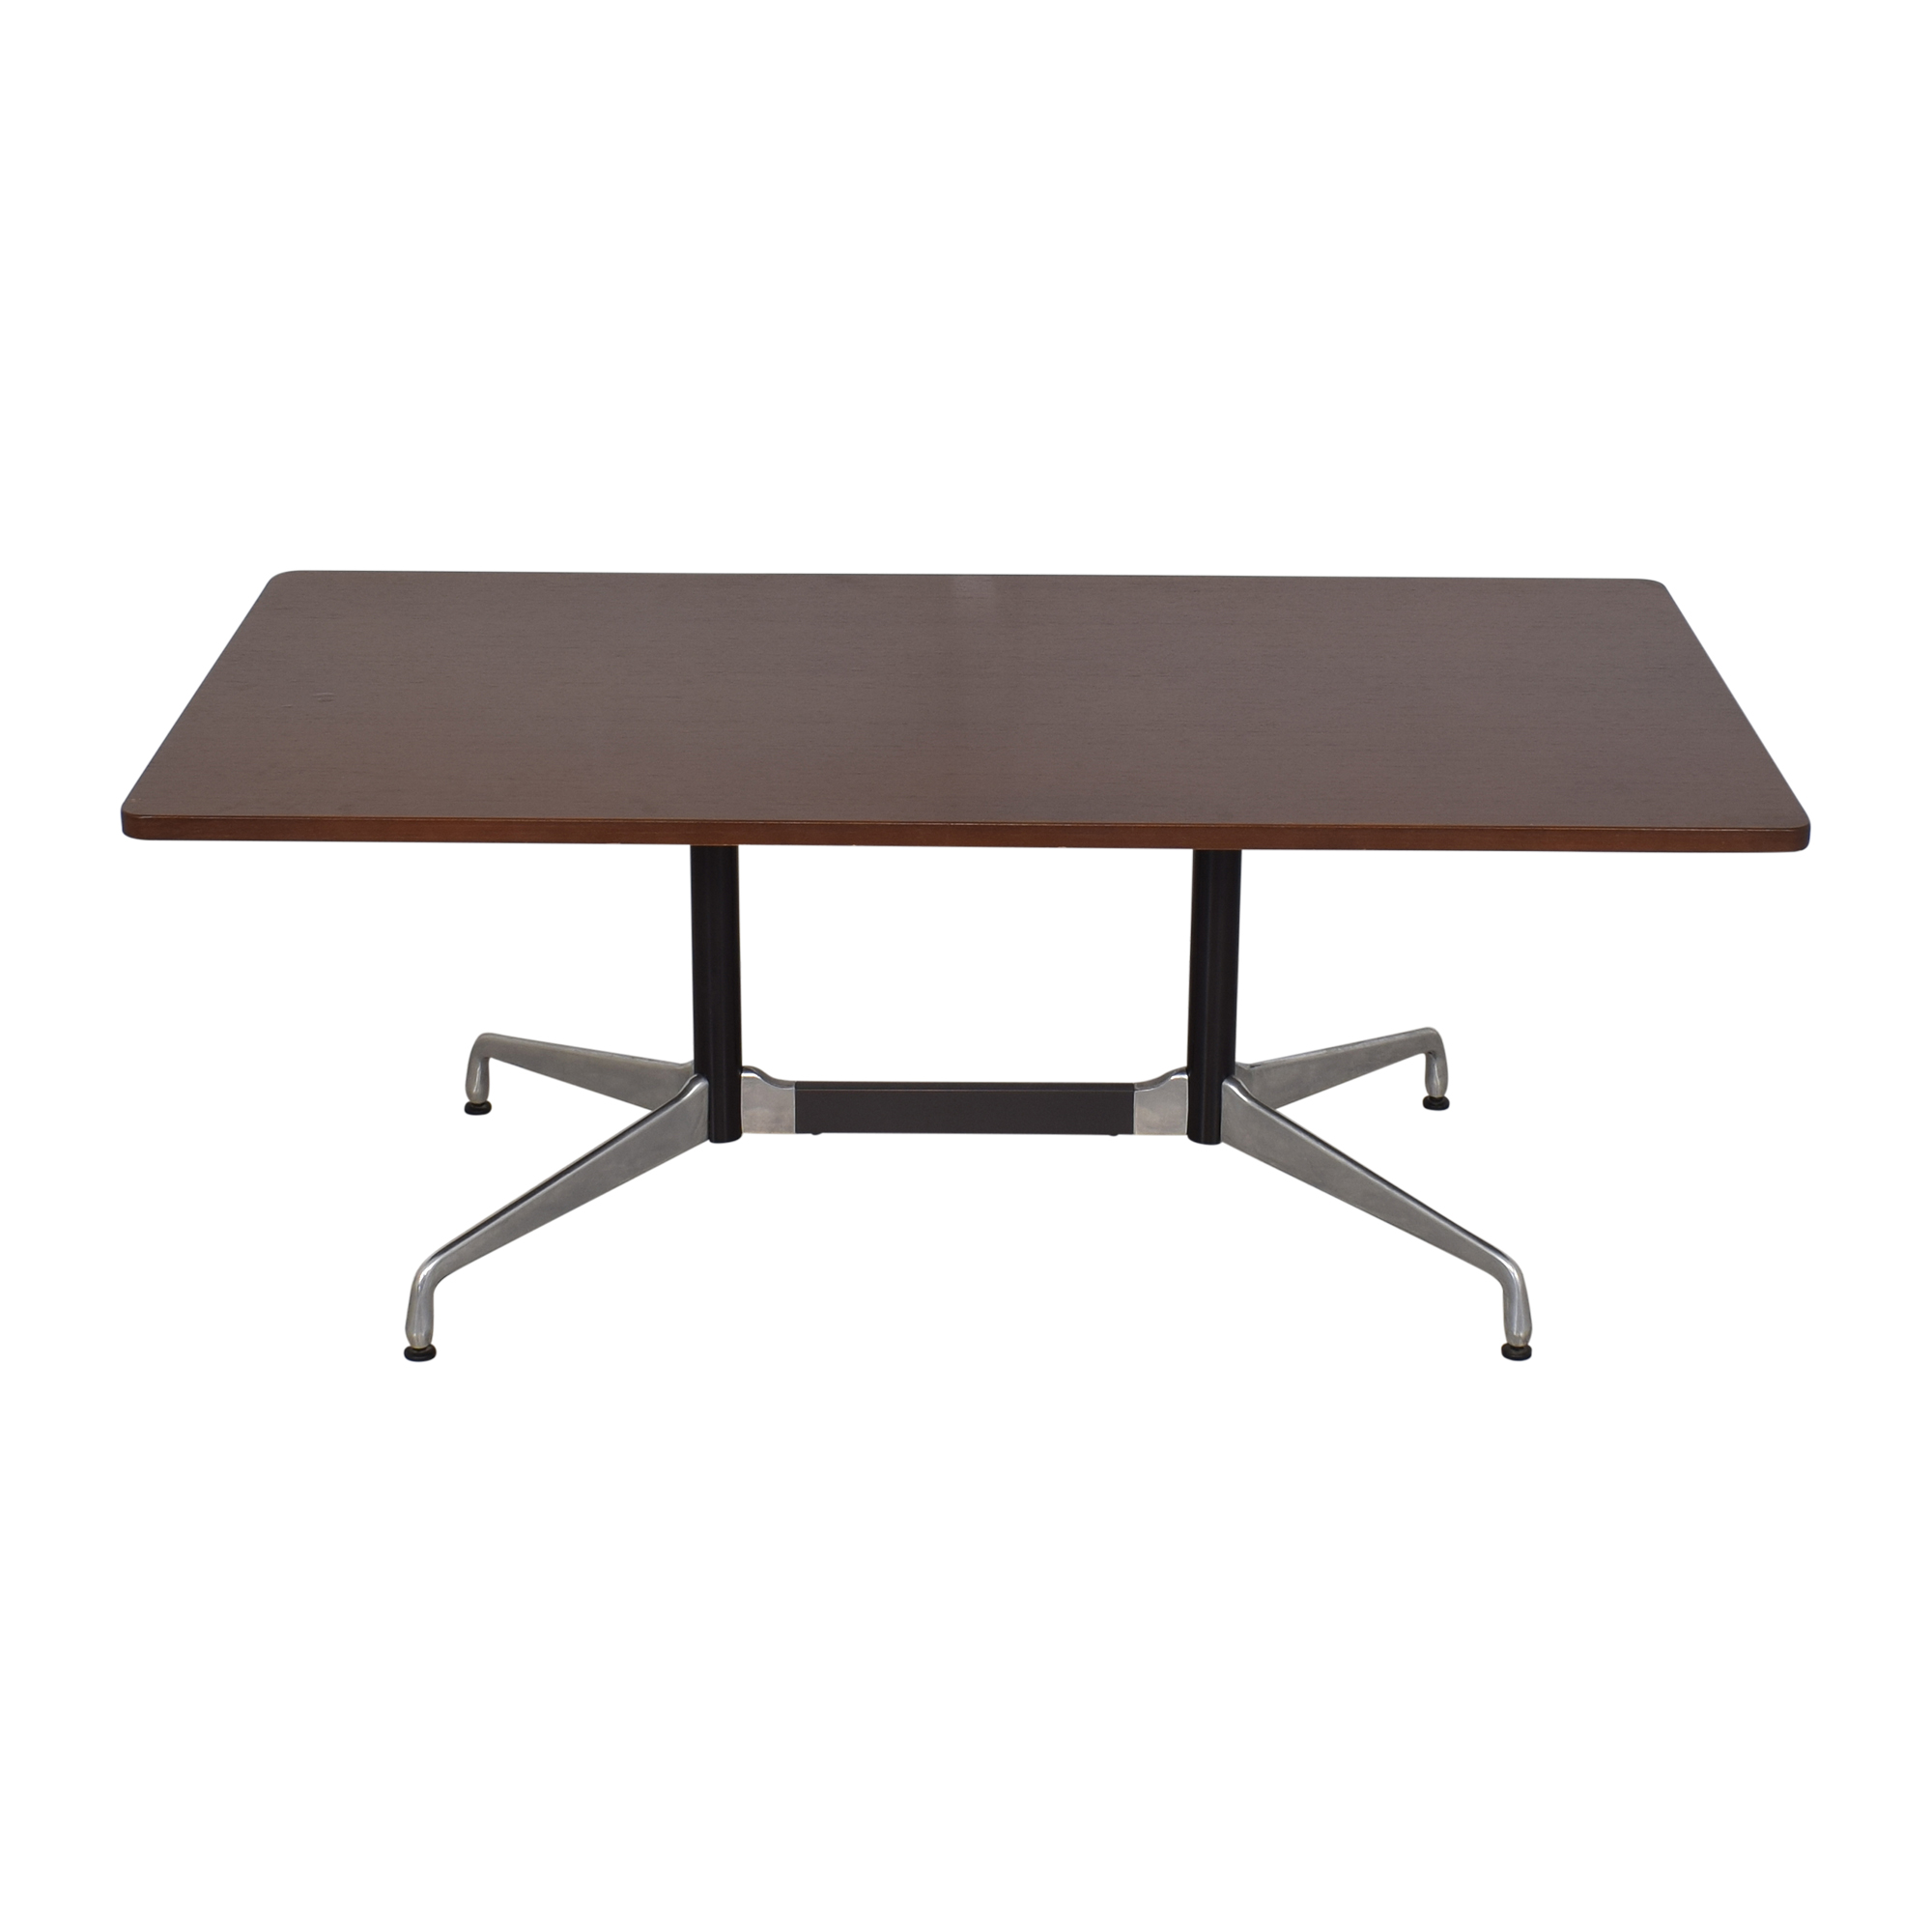 Herman Miller Herman Millier Eames Table with Rectangular Top and Segmented Base Tables